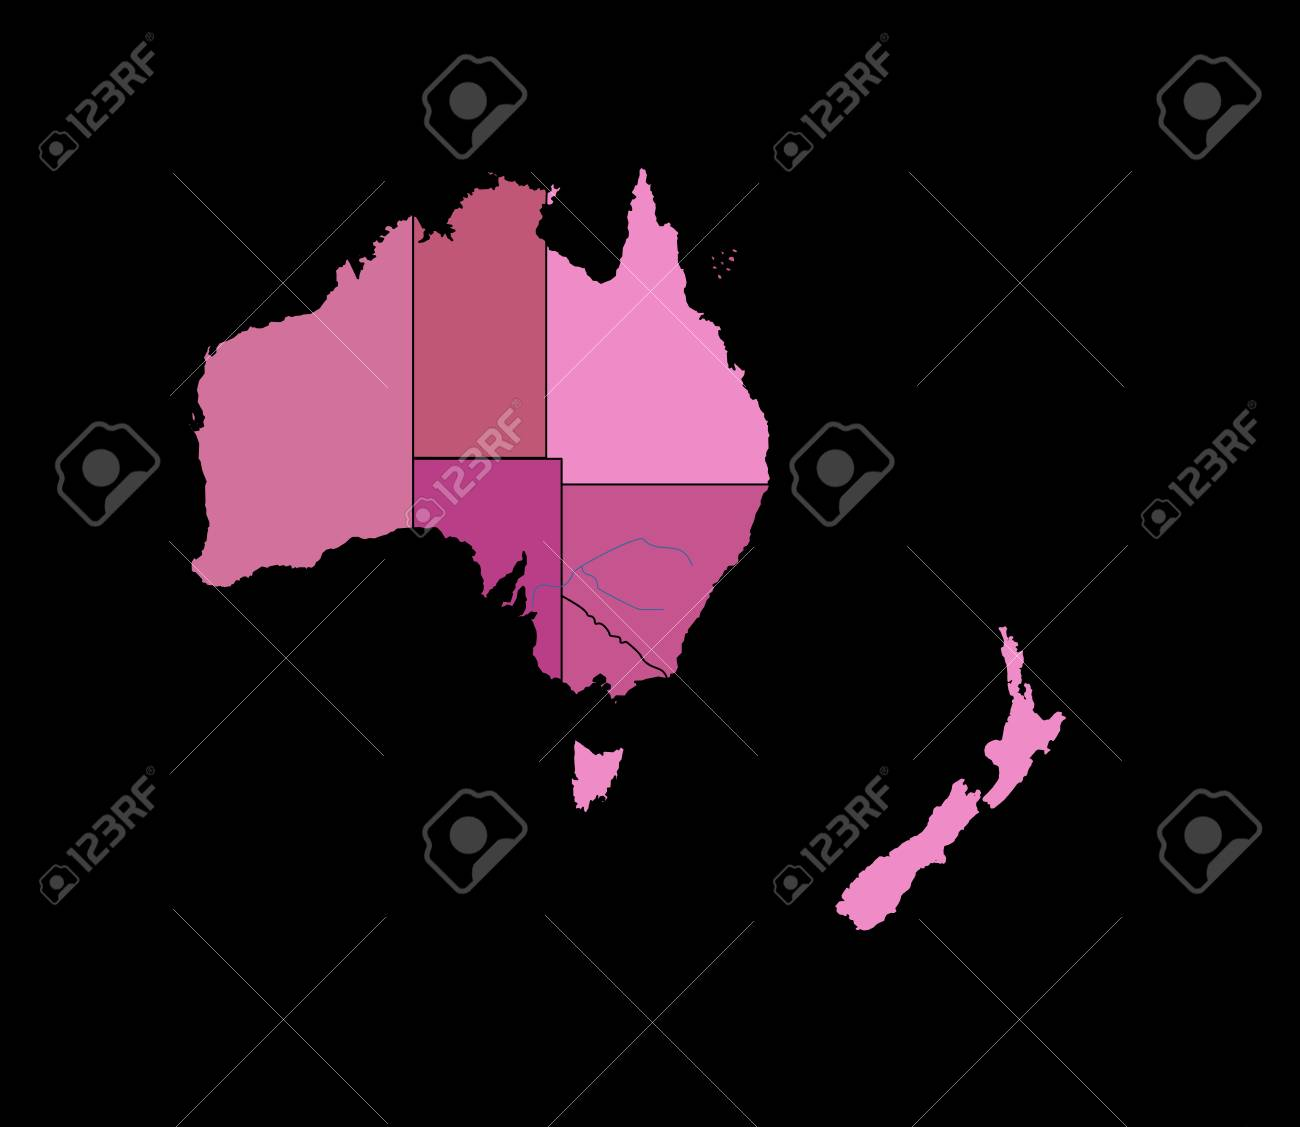 Australia Geographical Map.The Illustration A Geographical Map Of The Australia Royalty Free